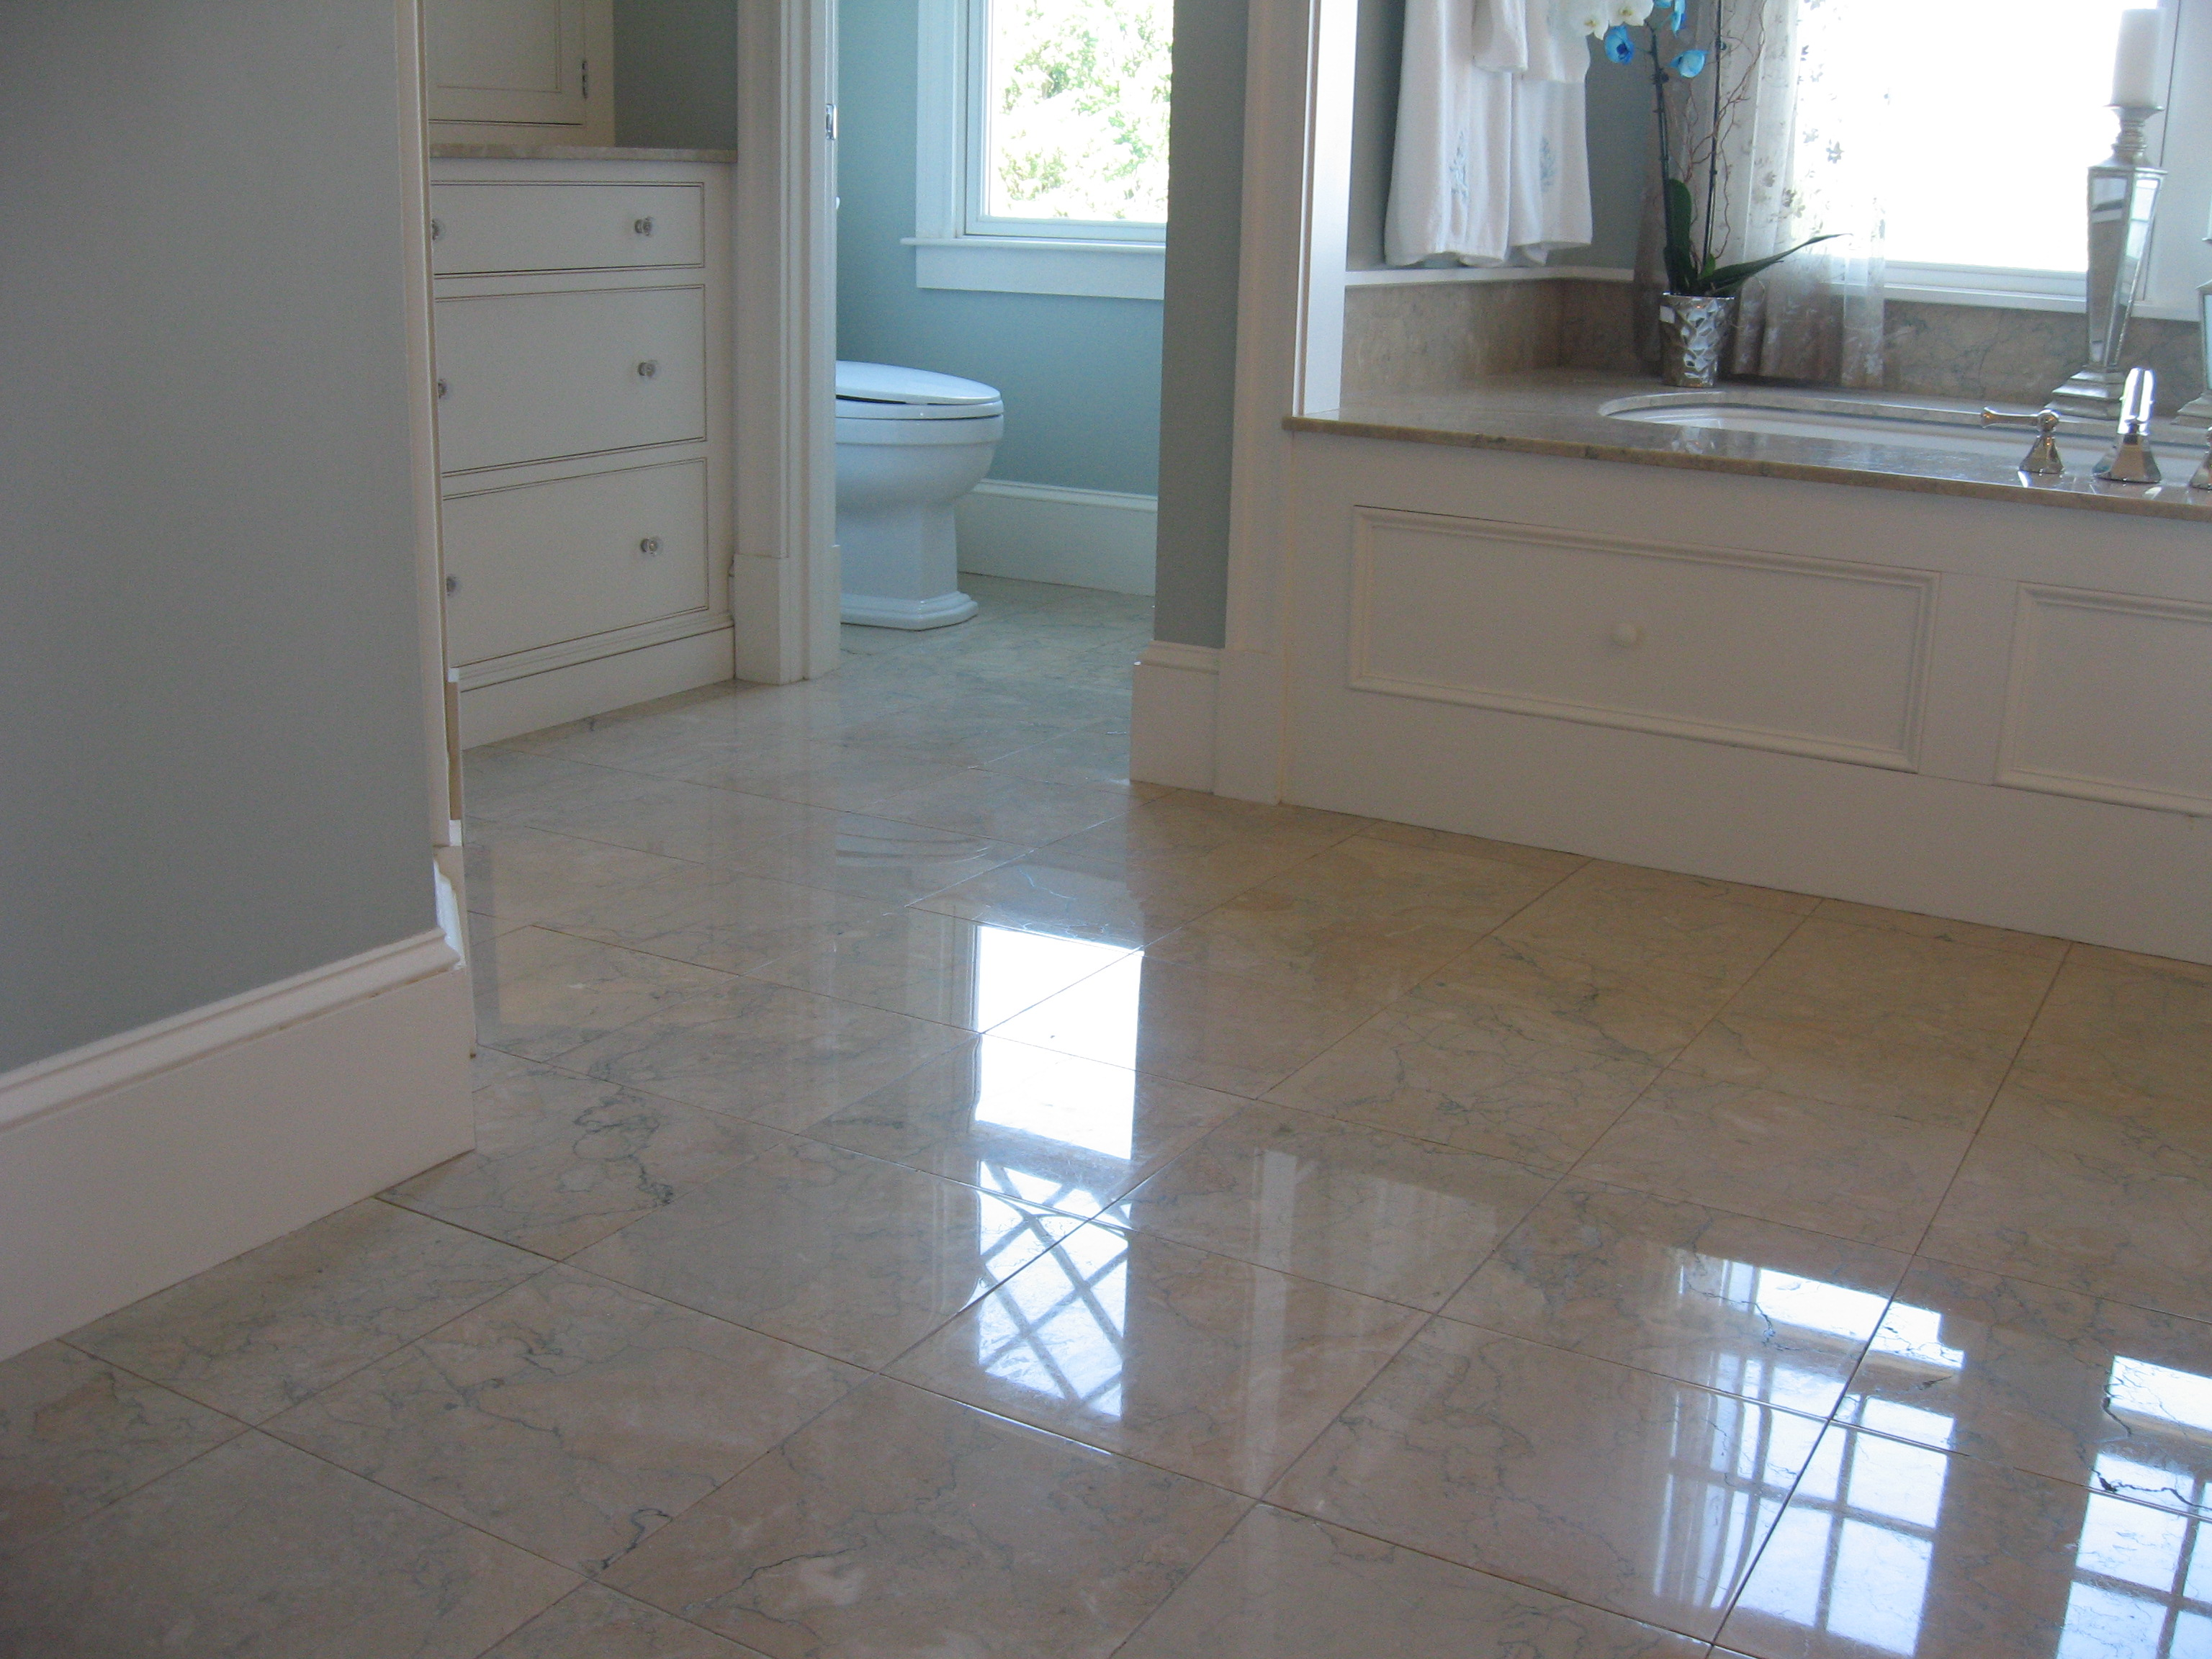 cap_marble_5 degfh dsc_5145 dsd dssxf efghg - Images Of Bathroom Floors